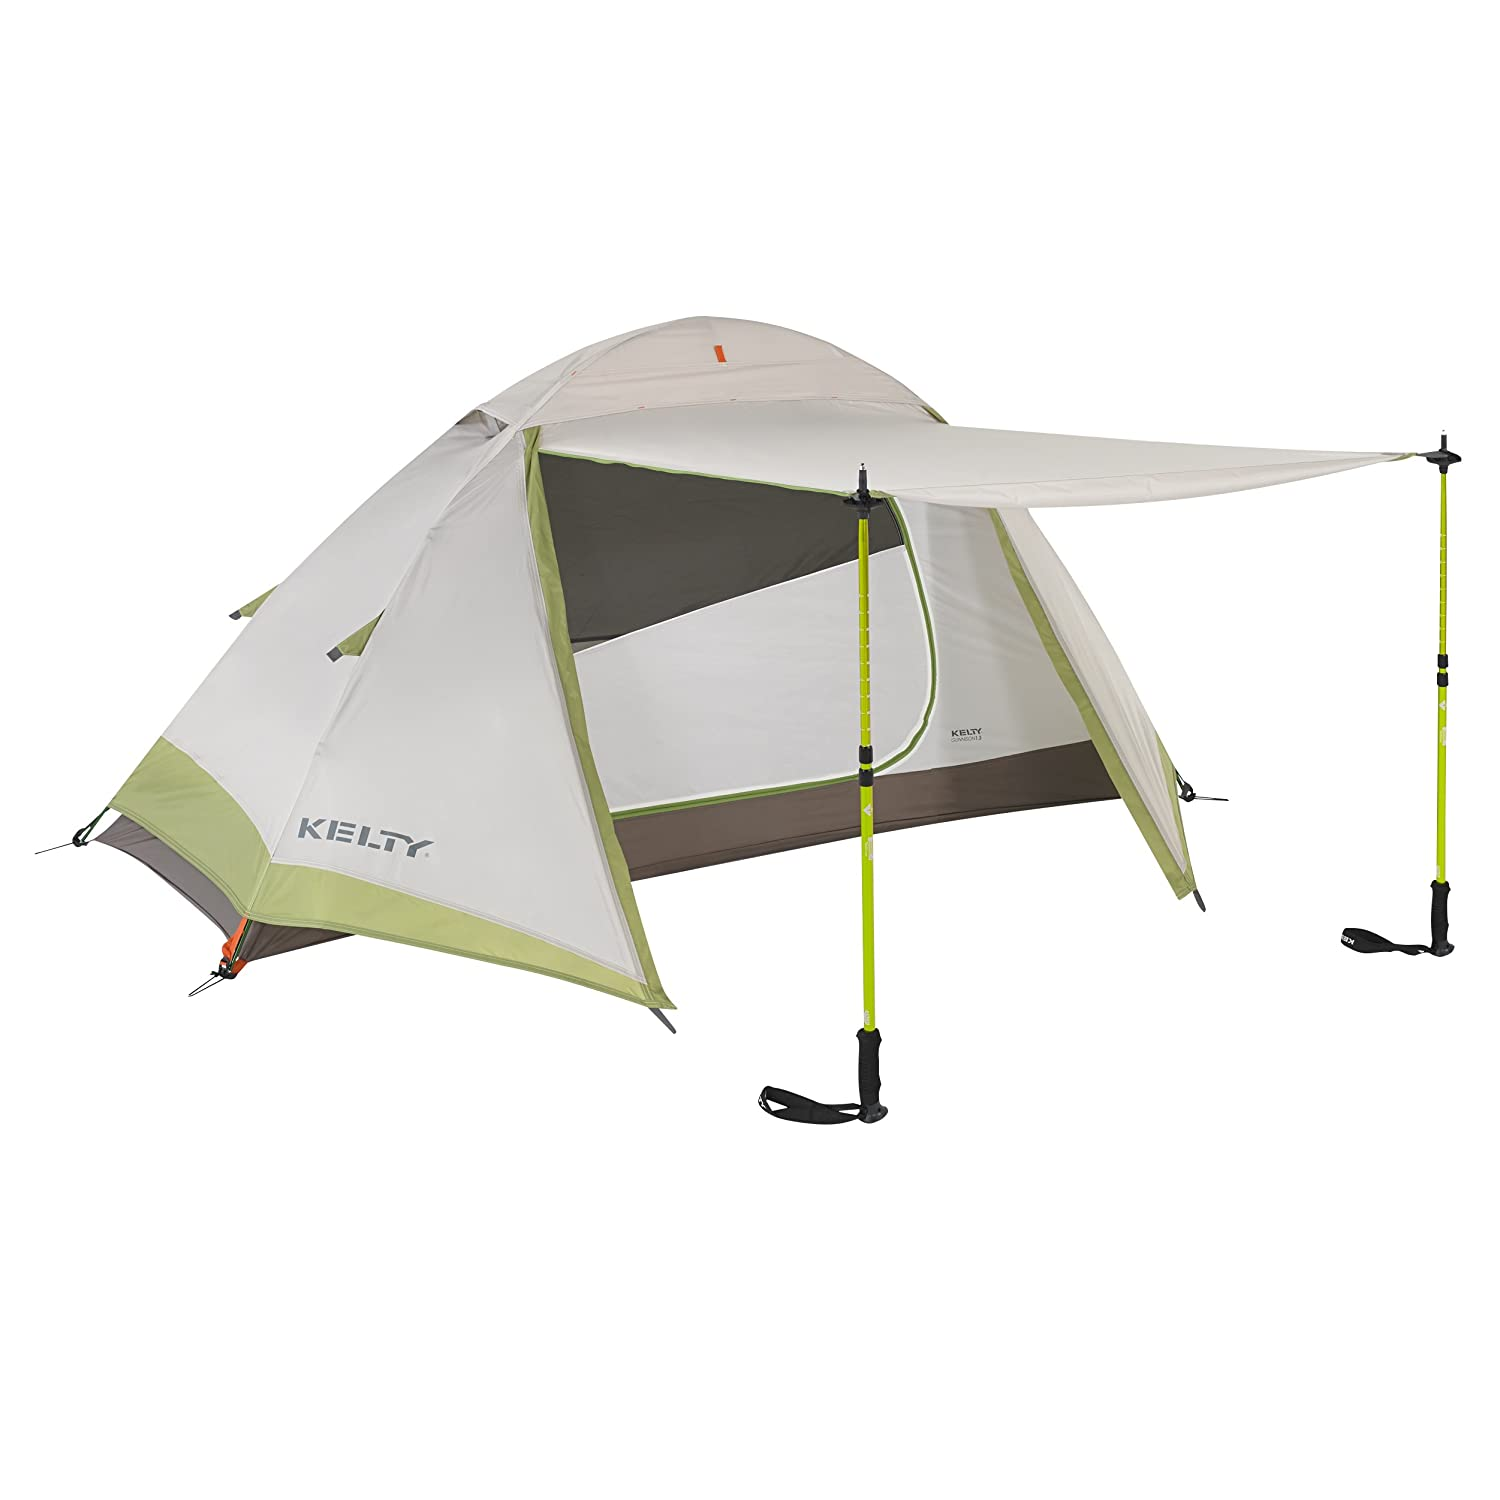 Amazon.com  Kelty Gunnison 1.3 1 Person Cube Designed Tent With Footprint  Sports u0026 Outdoors  sc 1 st  Amazon.com & Amazon.com : Kelty Gunnison 1.3 1 Person Cube Designed Tent With ...